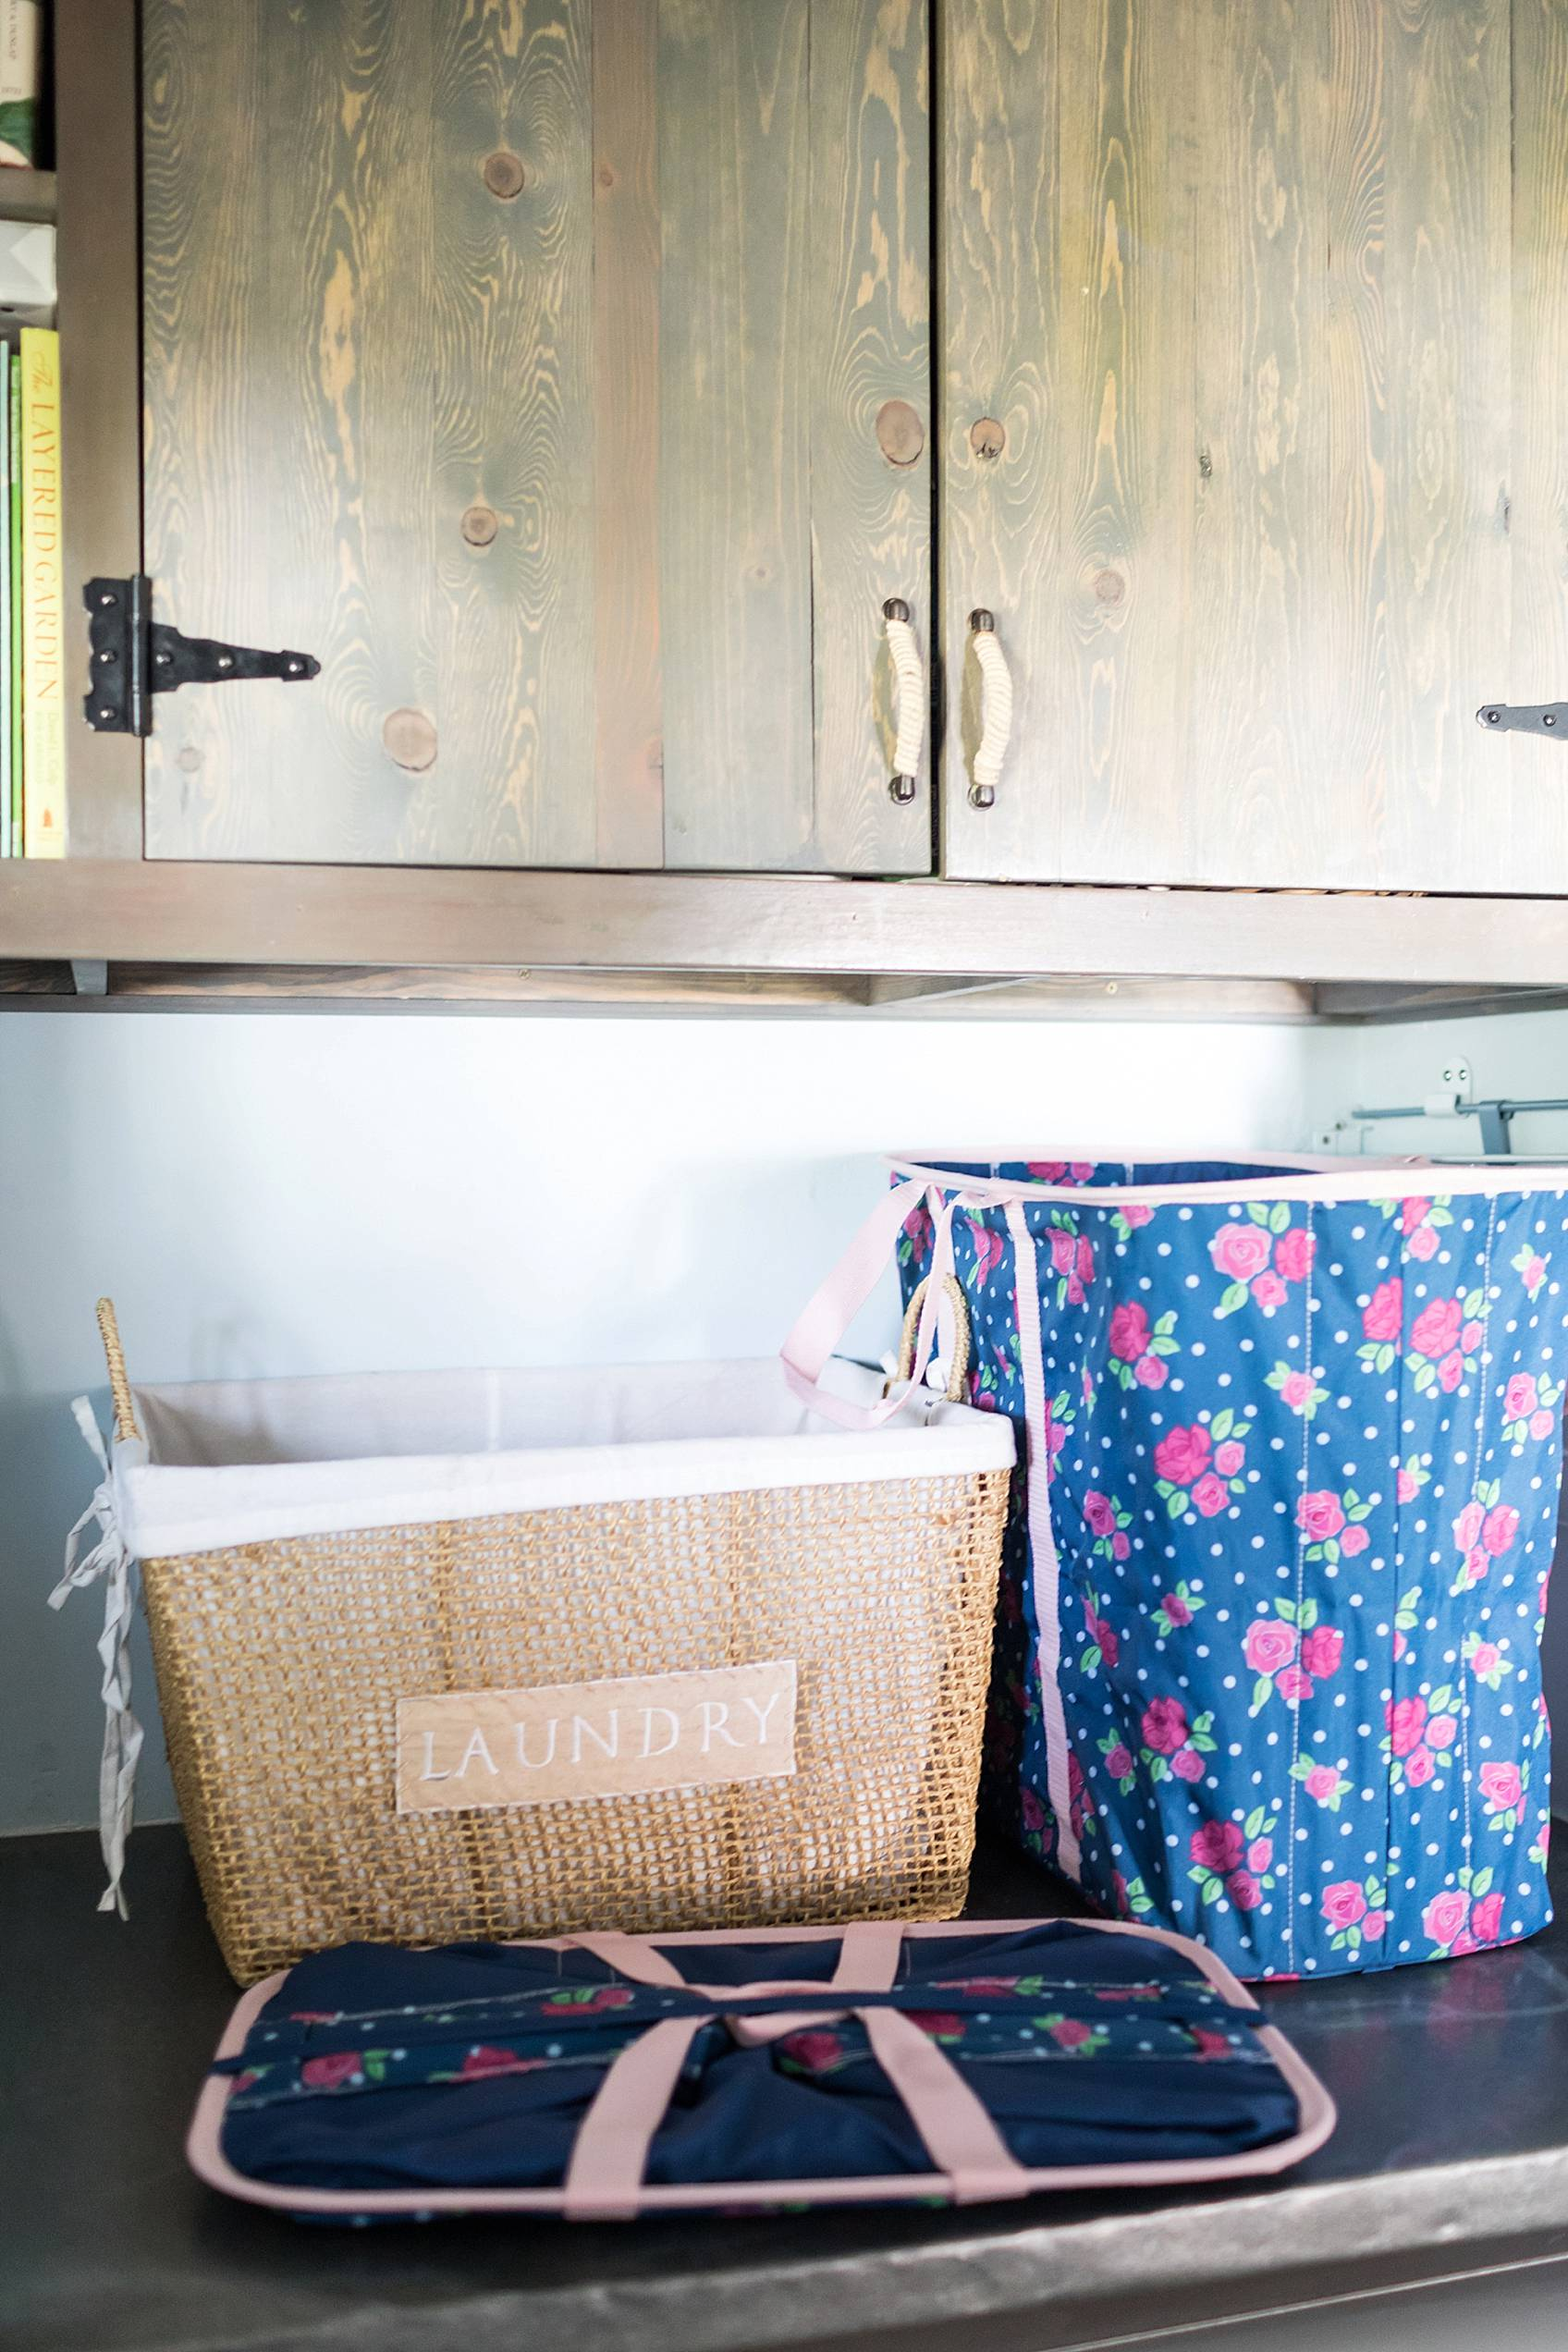 laundry mud room with custom cabinets rustic look with blue removable wallpaper in background and mint hunter fan Ikea cactus hunter boots display laundry basket cute rose collapsible